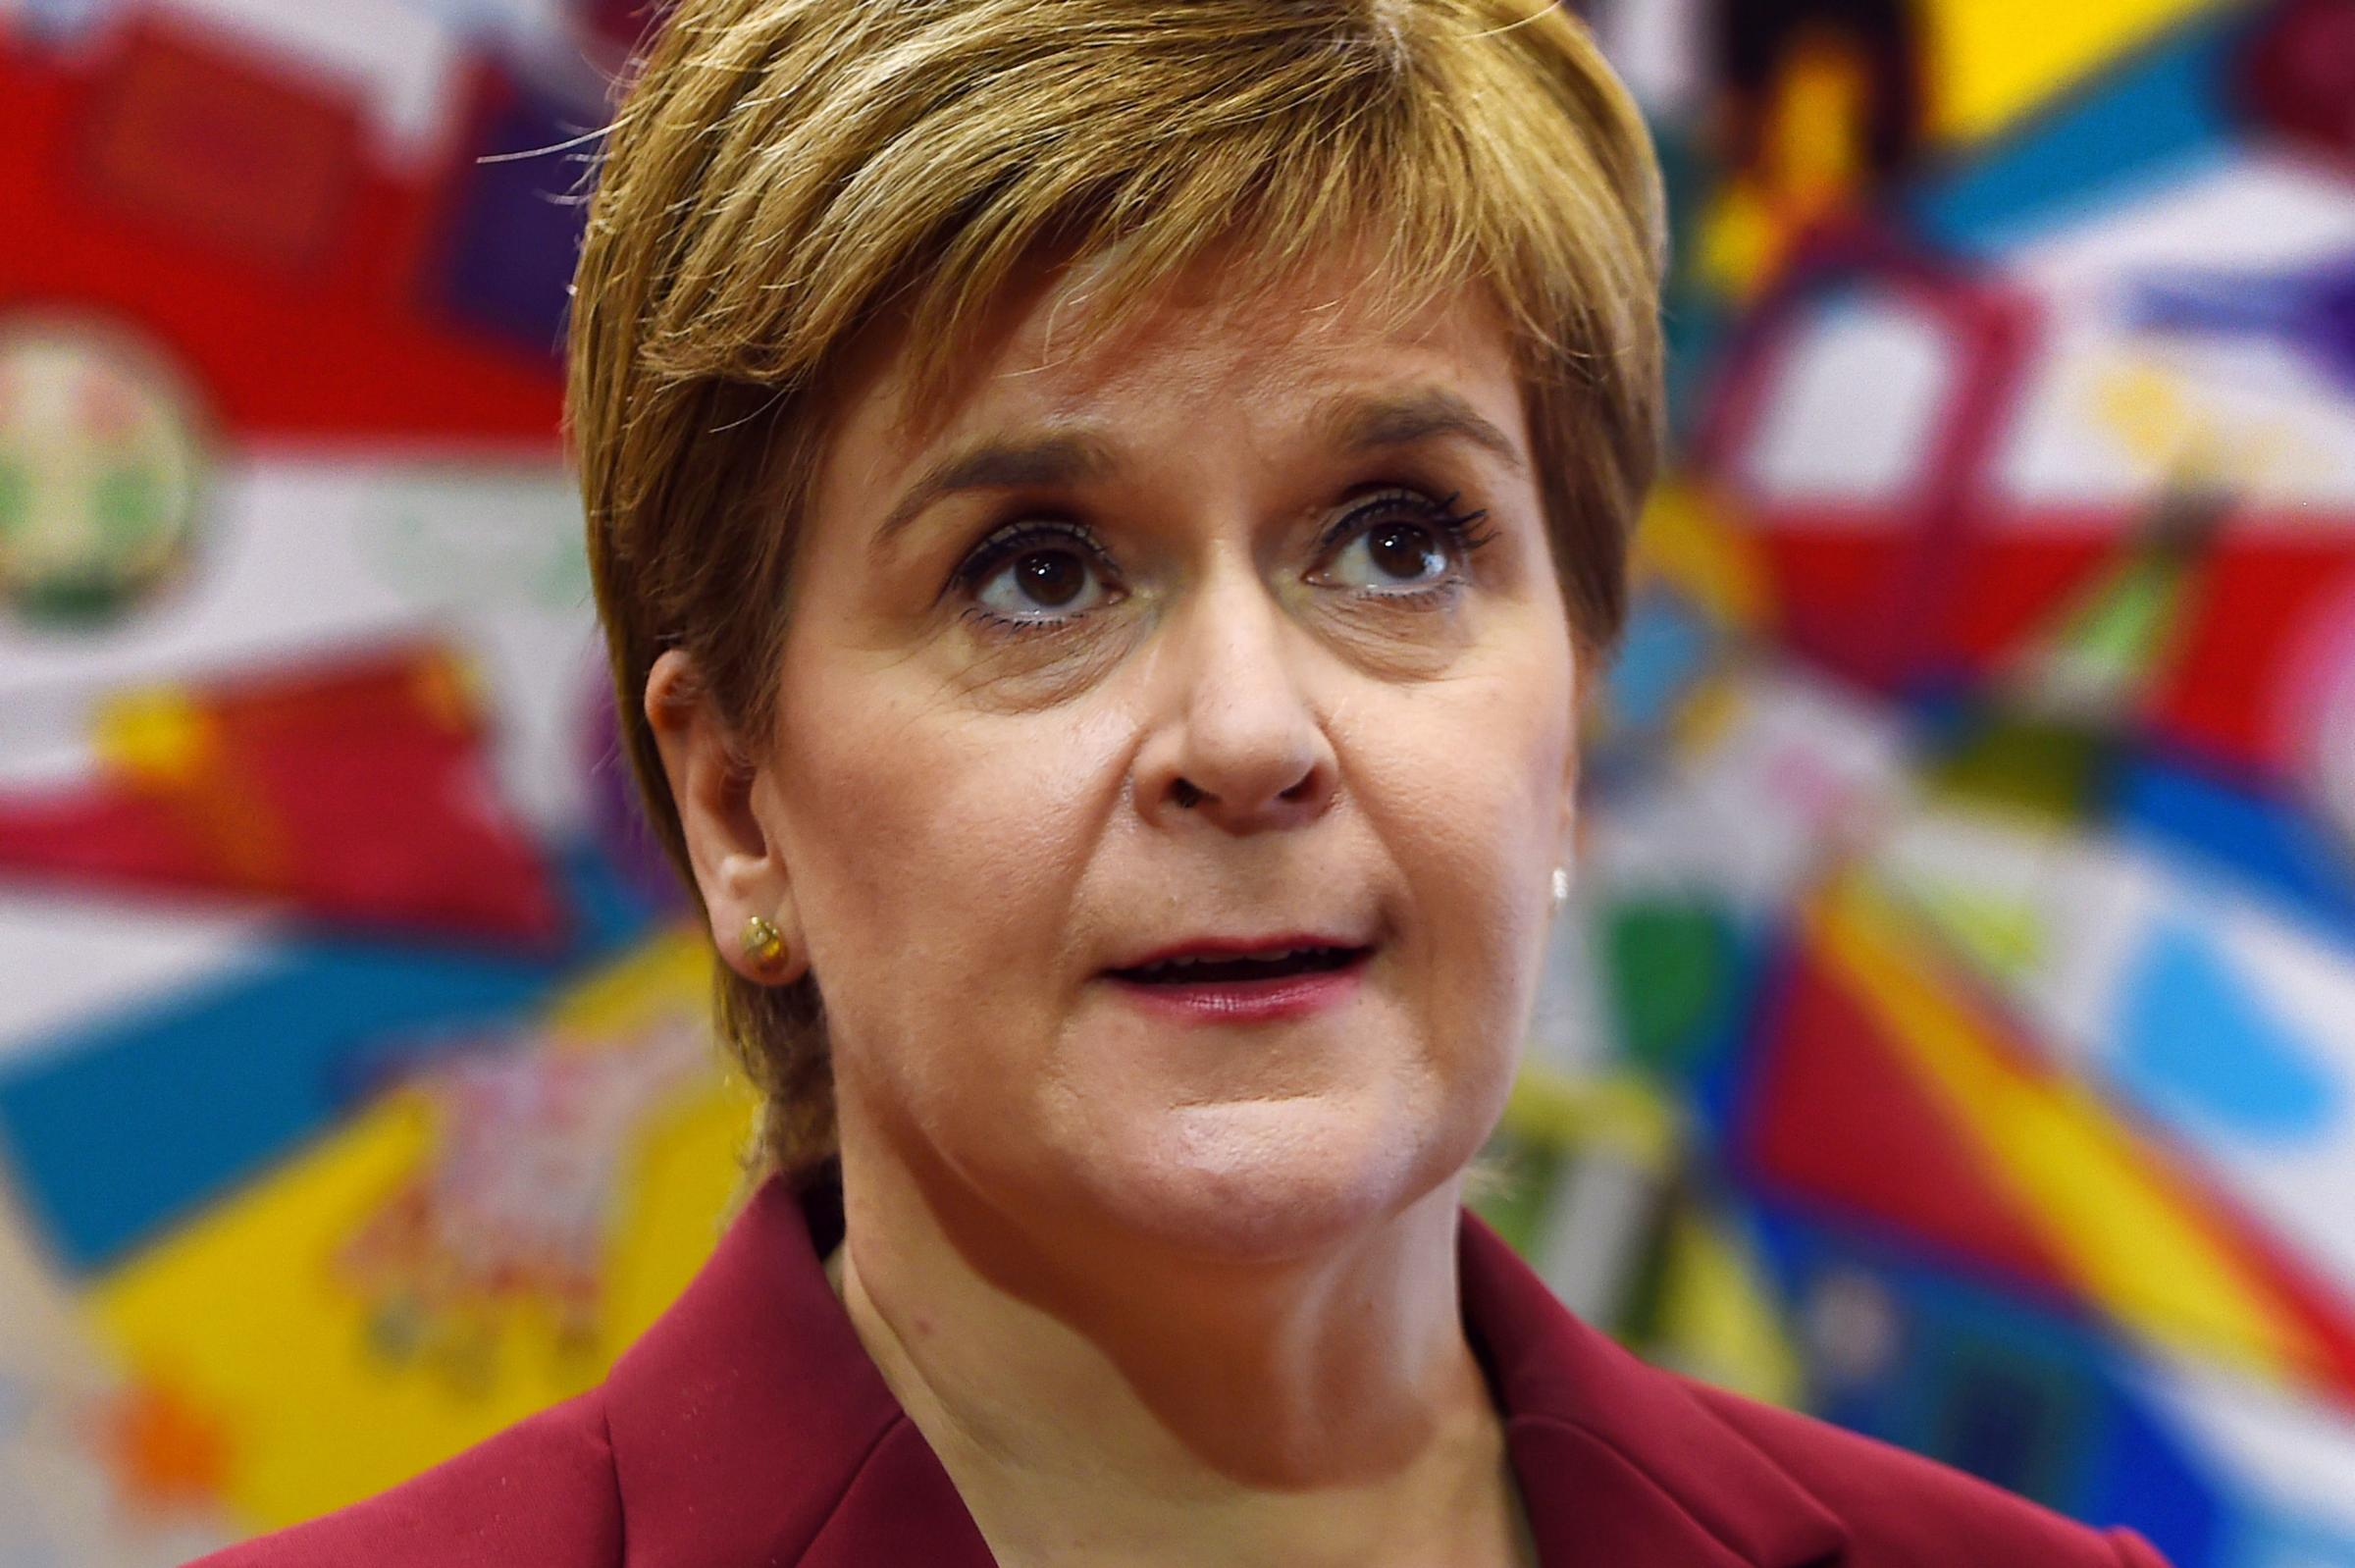 Brian Taylor: Why Nicola Sturgeon showed her exasperation – and why there may be much more to come